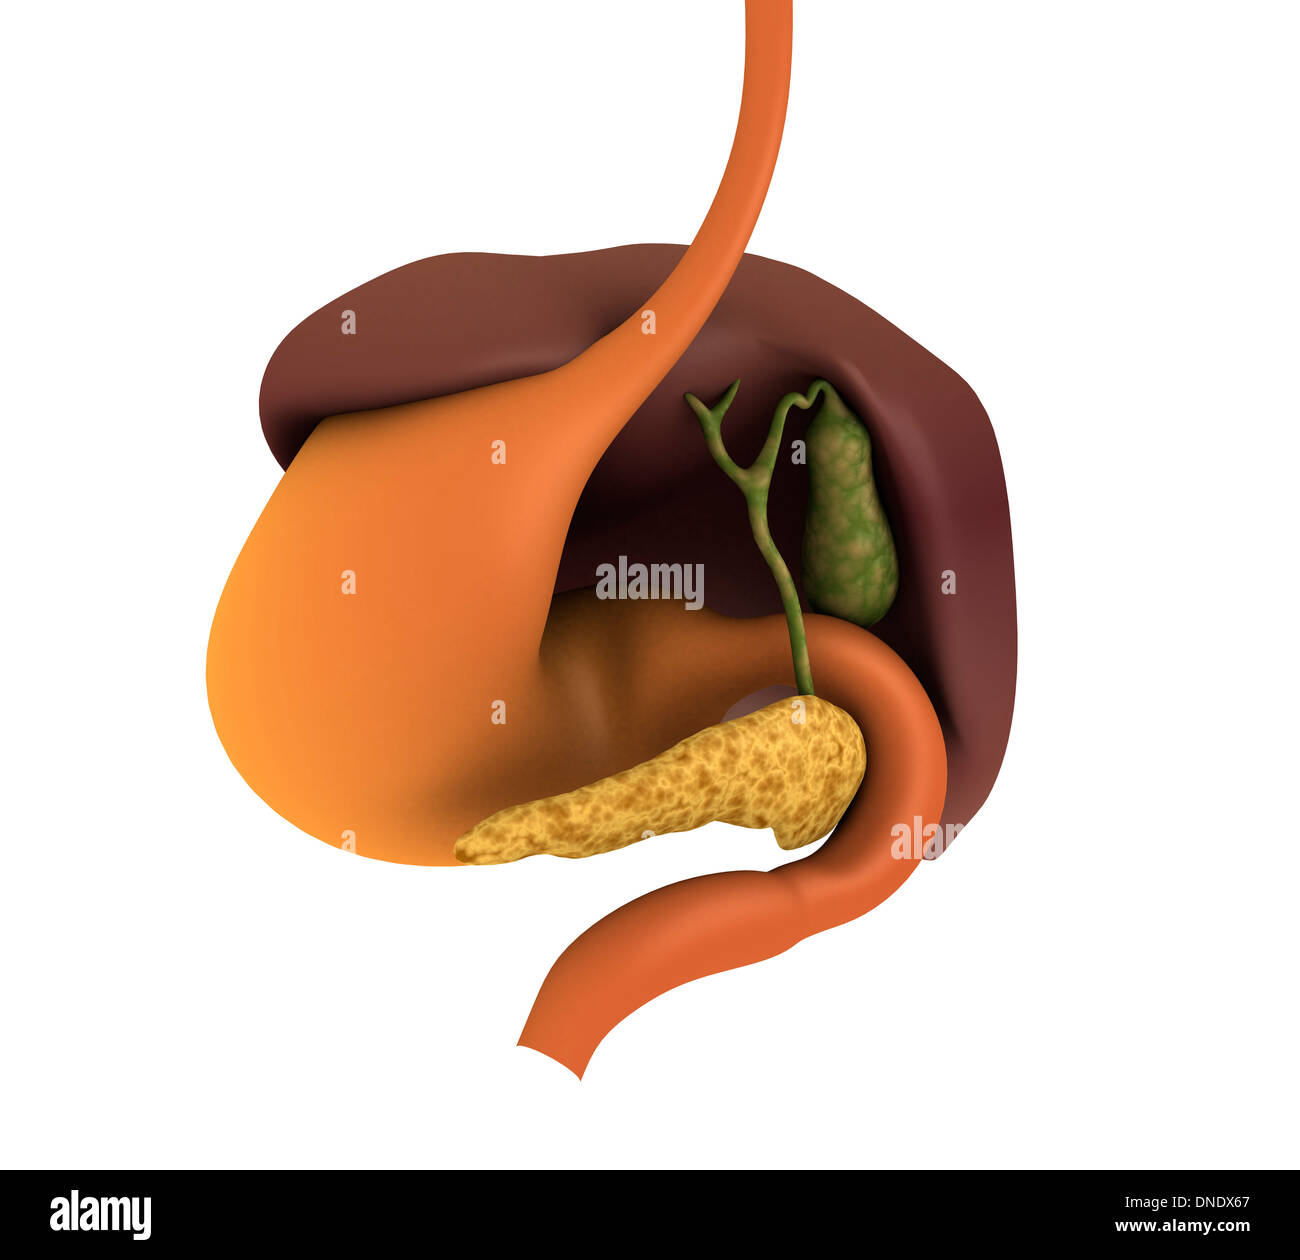 Liver And Gallbladder Stock Photos Liver And Gallbladder Stock